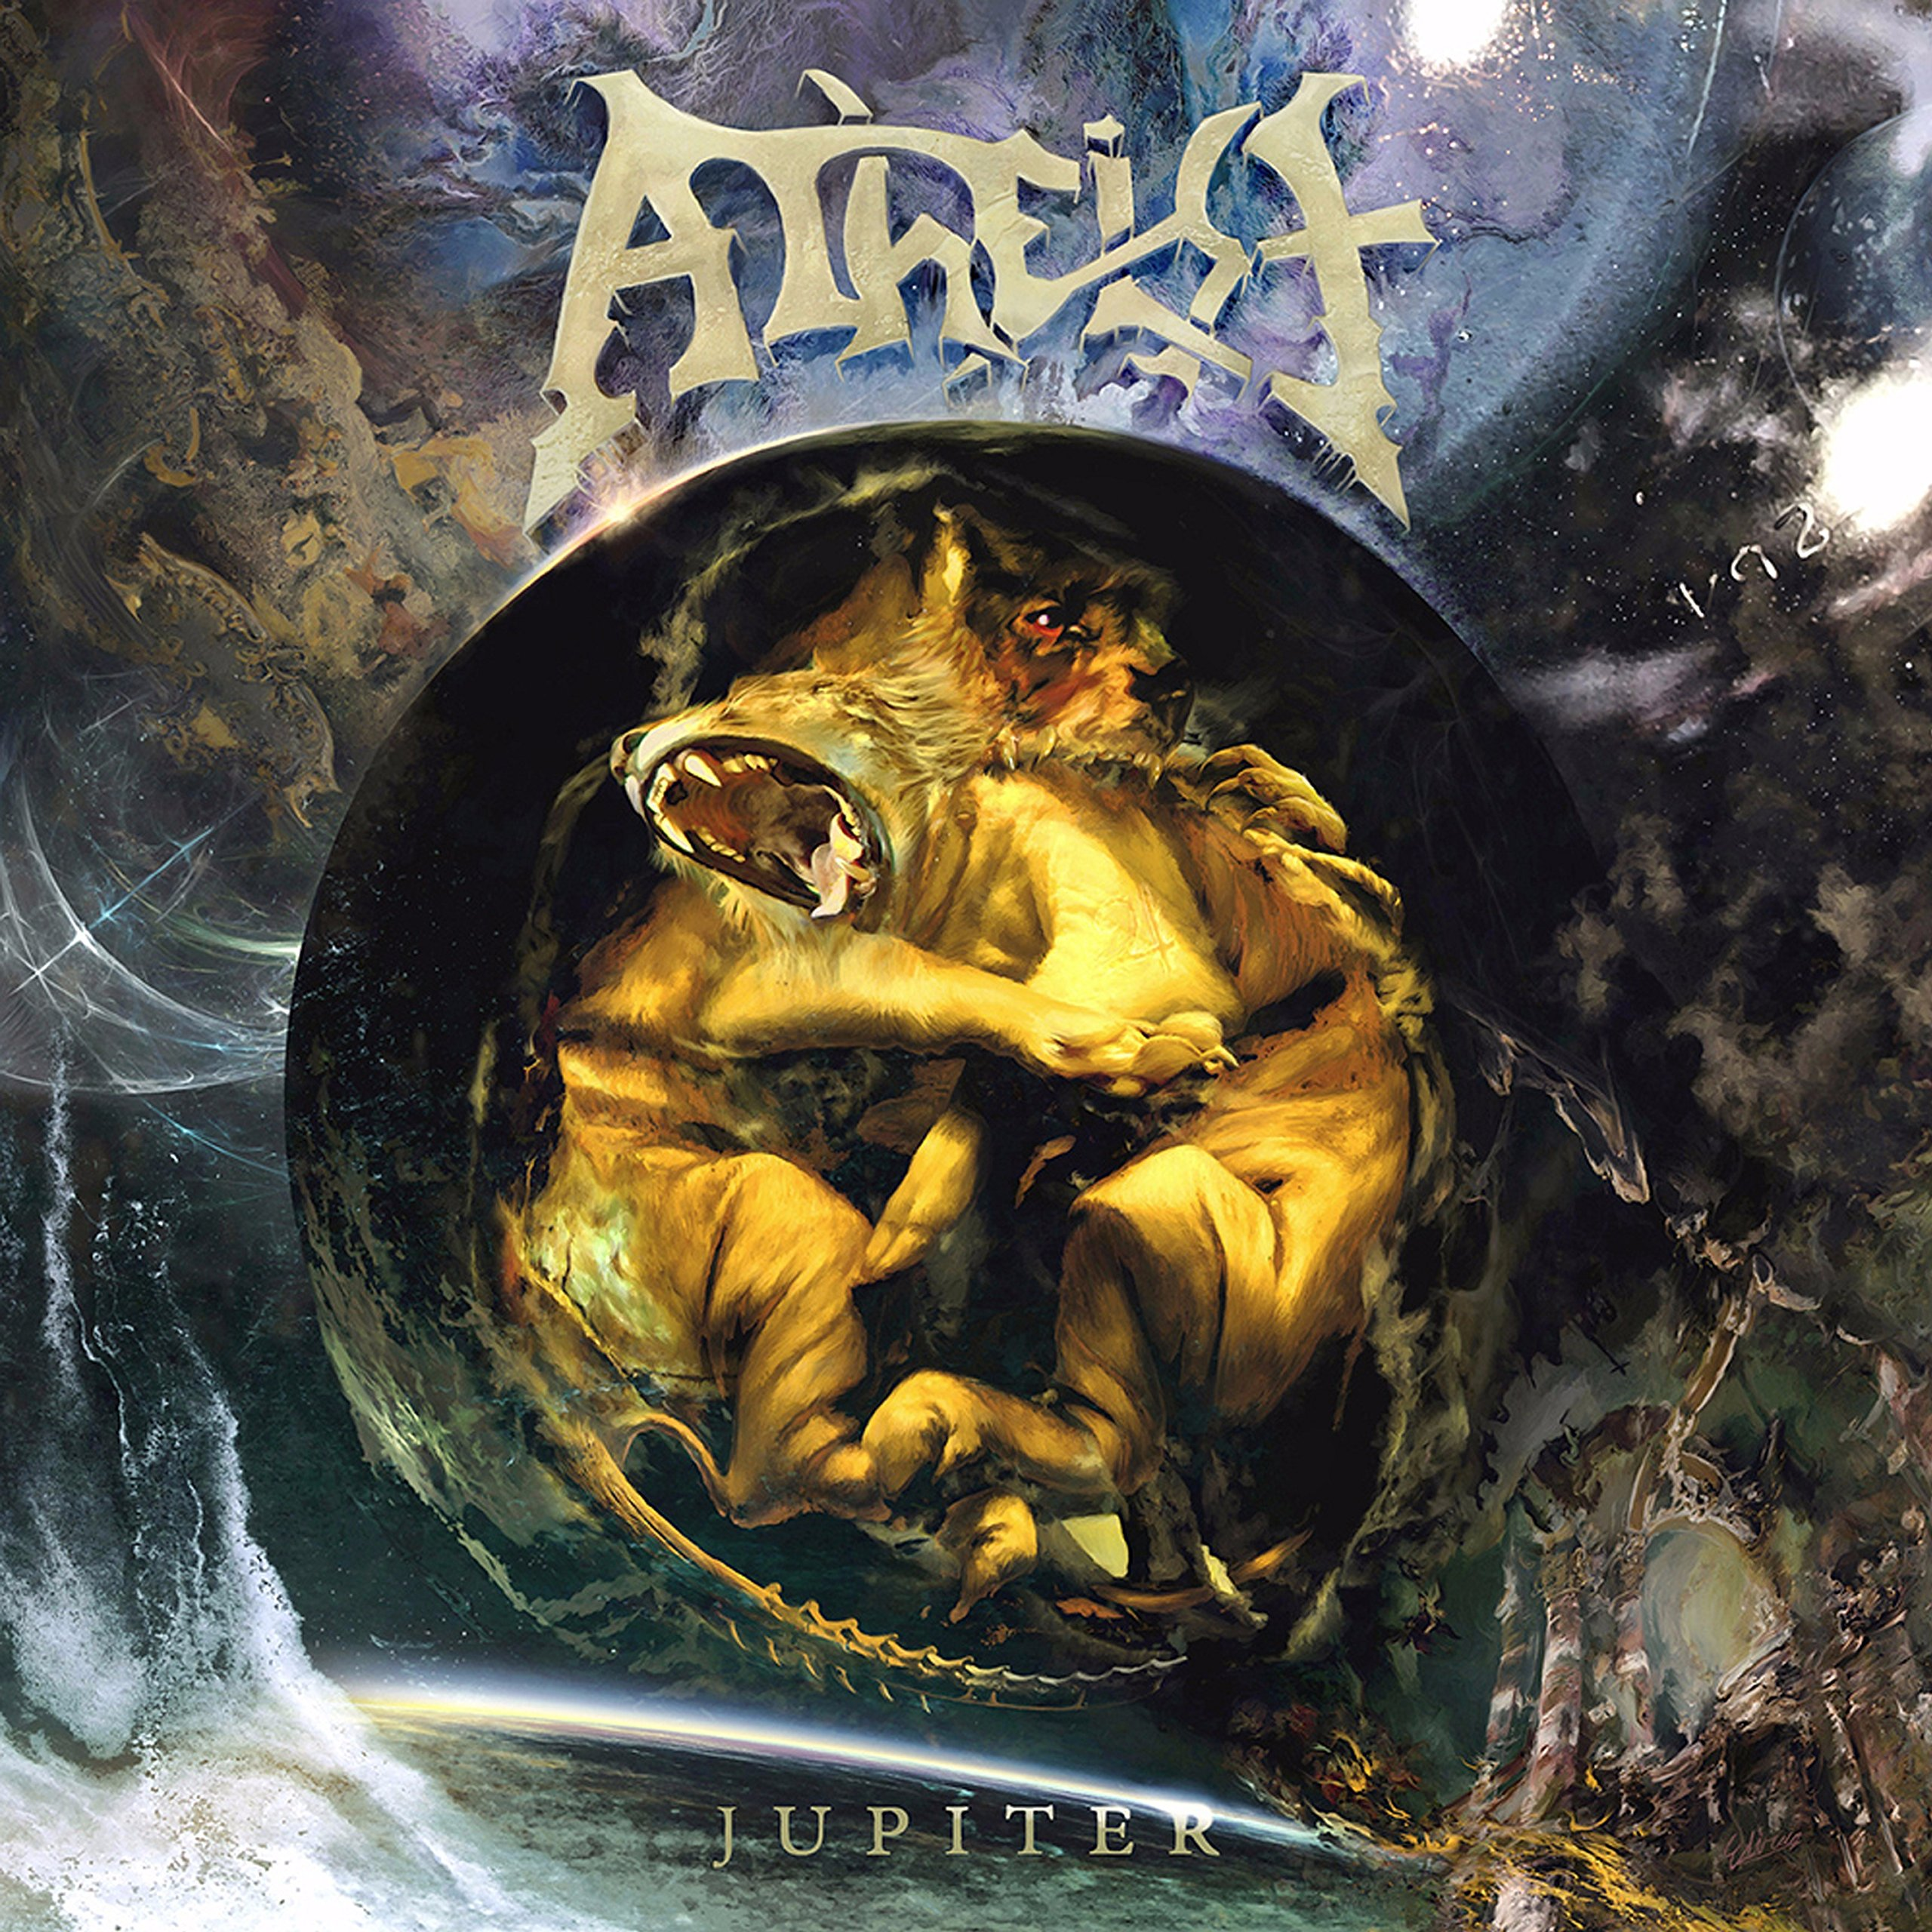 Vinilo : Atheist - Jupiter (Limited Edition, Colored Vinyl, Yellow, Aluminum, Poster)